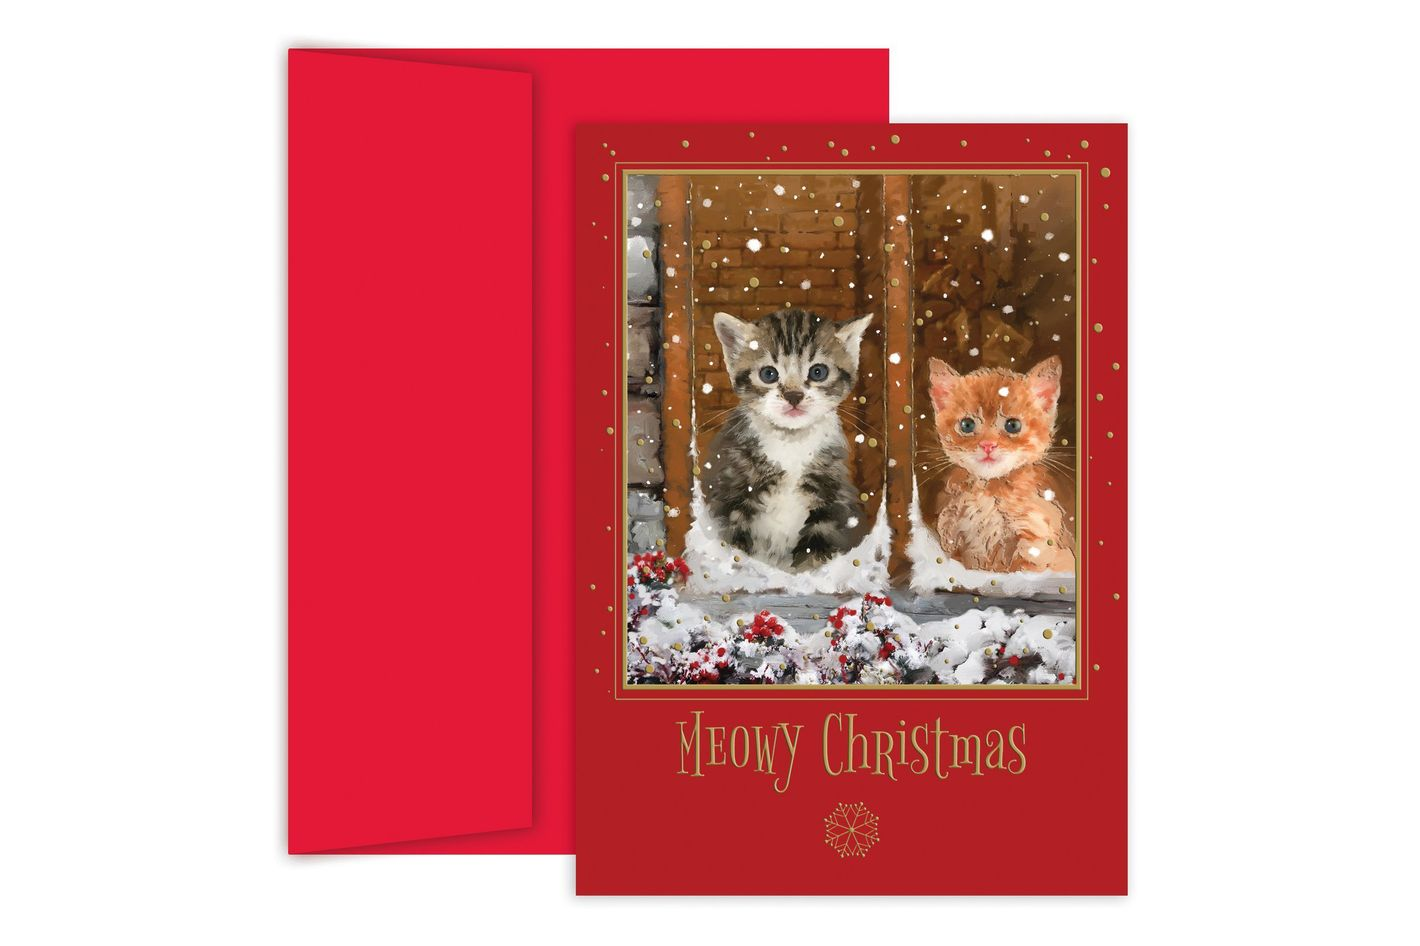 Masterpiece Studios Holiday Collection Boxed Cards, Meowy Christmas